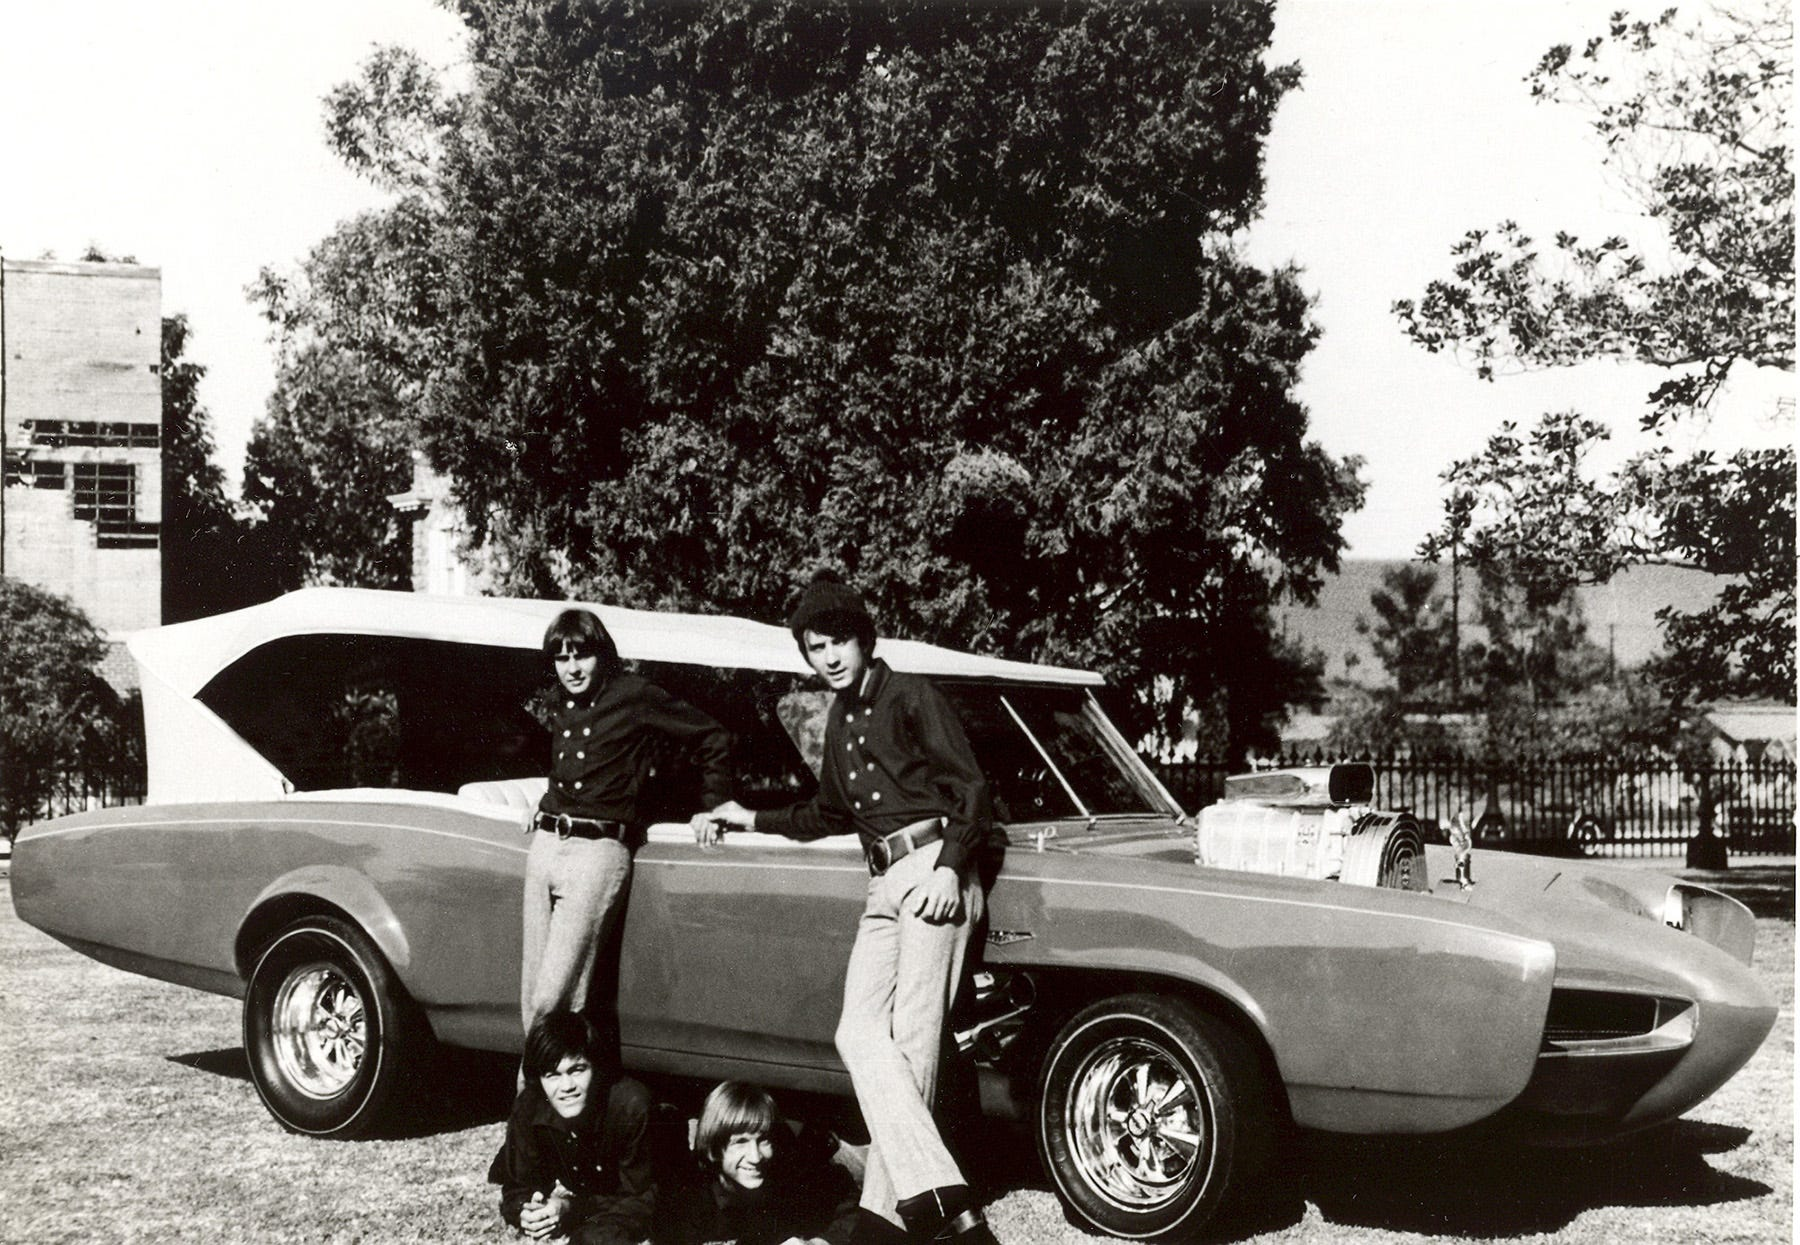 """In this 1966 file photo, cast members of the television show """"The Monkees,"""" from top left, Davy Jones, Michael Nesmith, from lower left, Micky Dolenz, and Peter Tork pose next to their customized Pontiac GTO."""